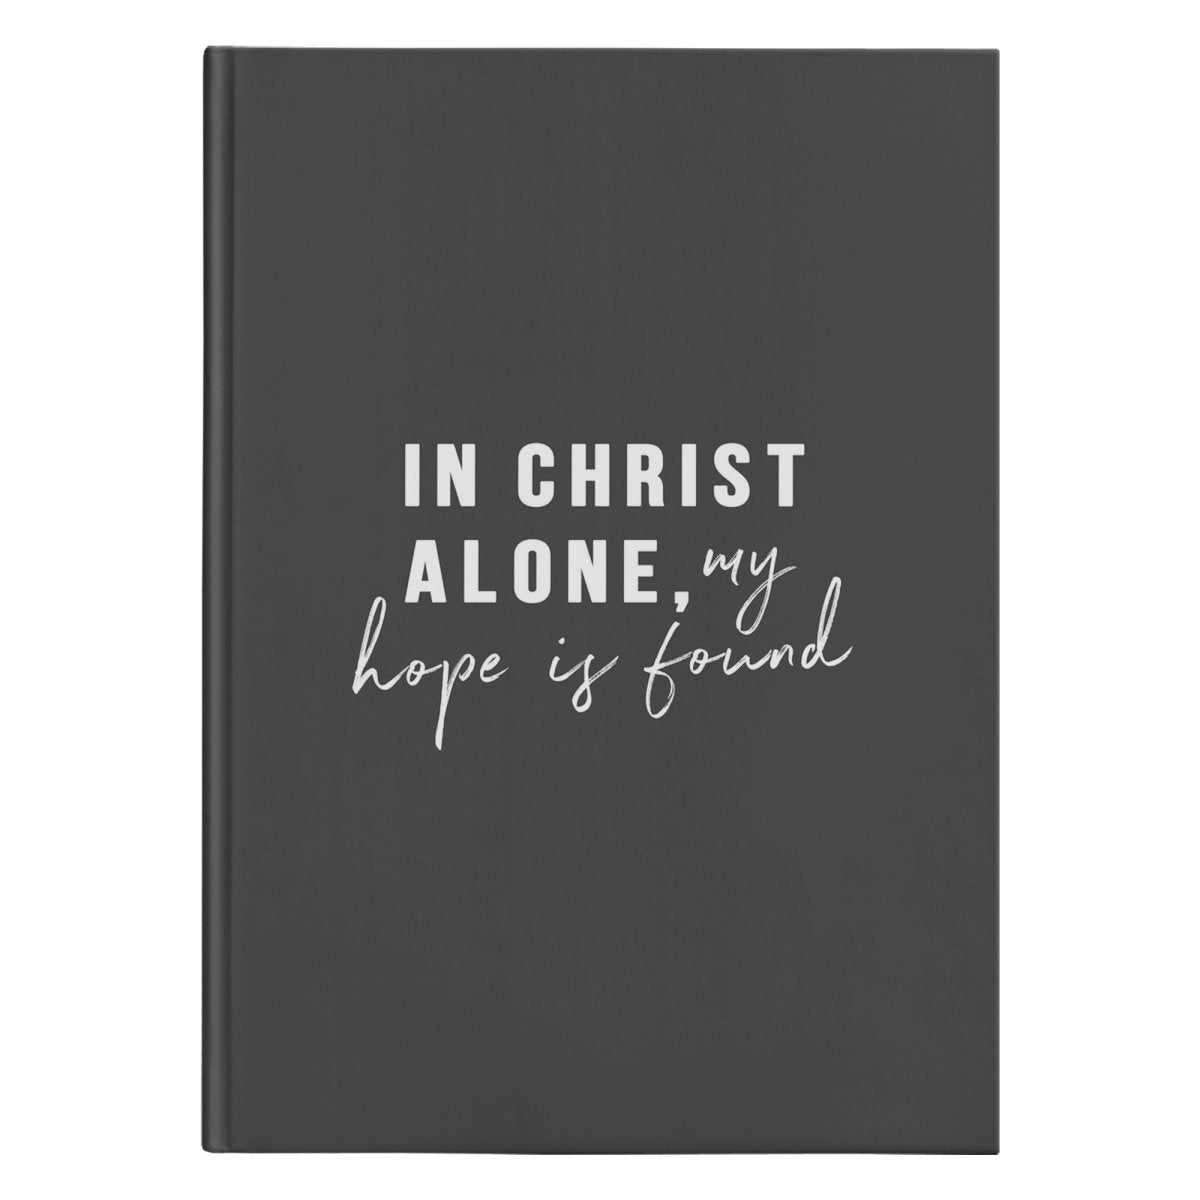 In Christ Alone (150 Page Hardcover Journal) - SDG Clothing